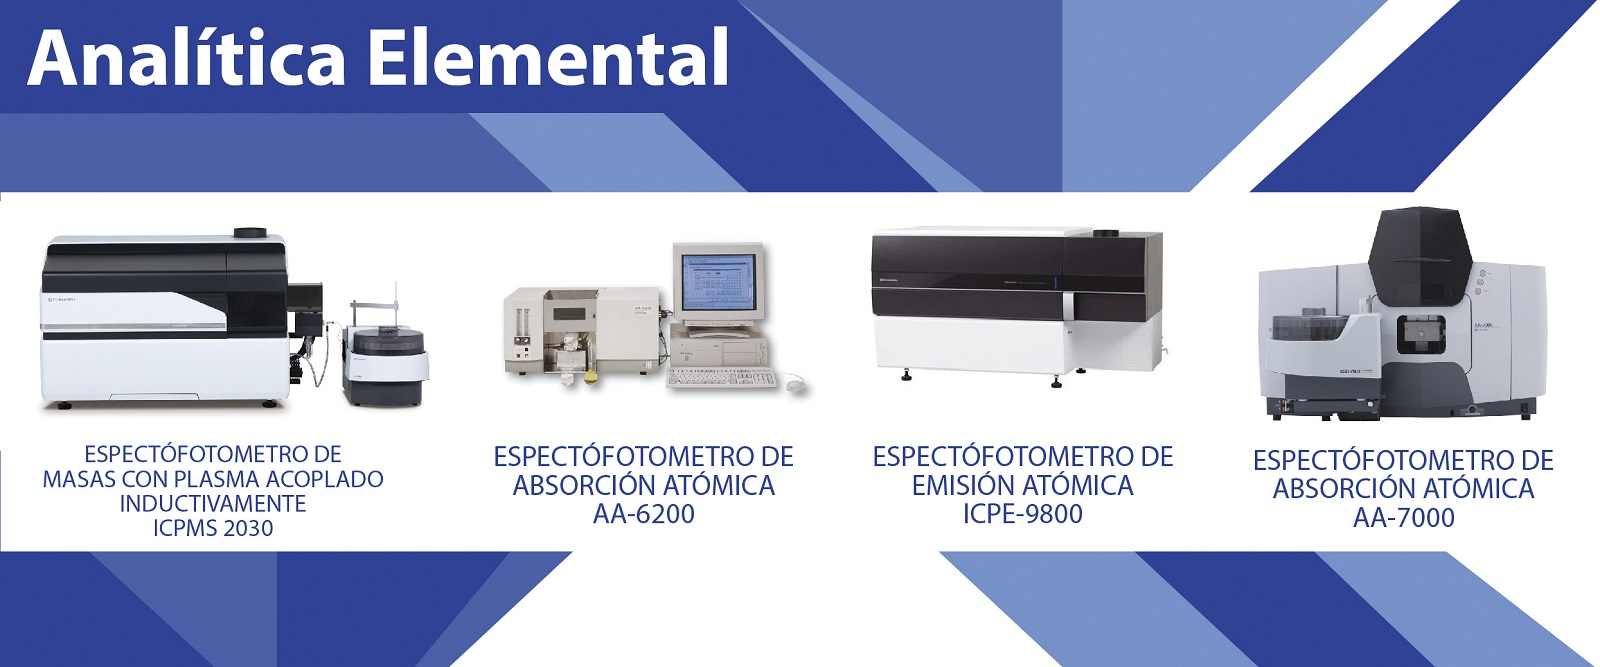 analitica-elemental-is-analitica